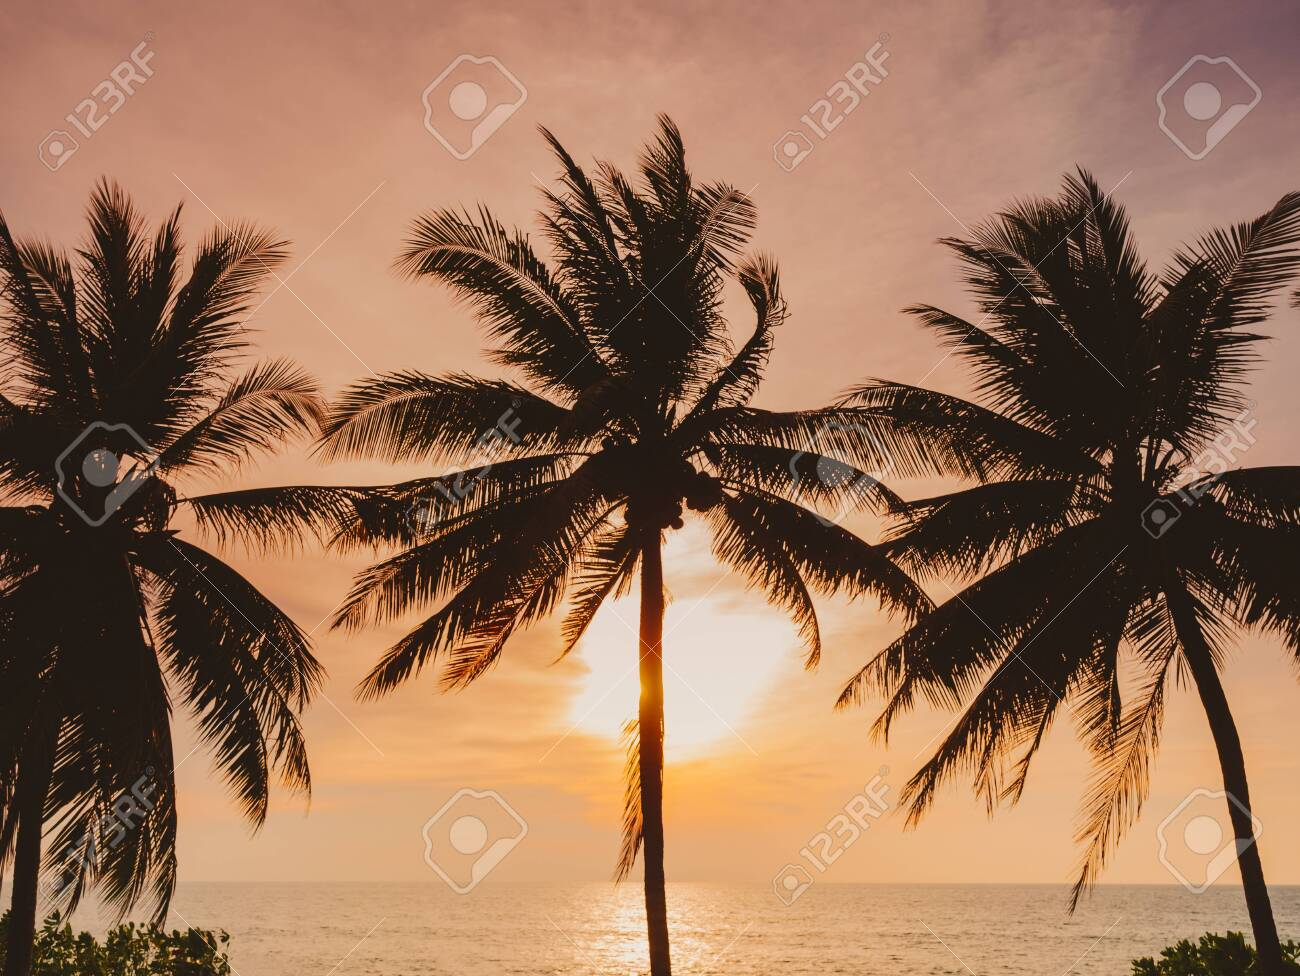 Coconut Tree Sunset Beach Vacation Outdoor Summer holiday Background - 145682258